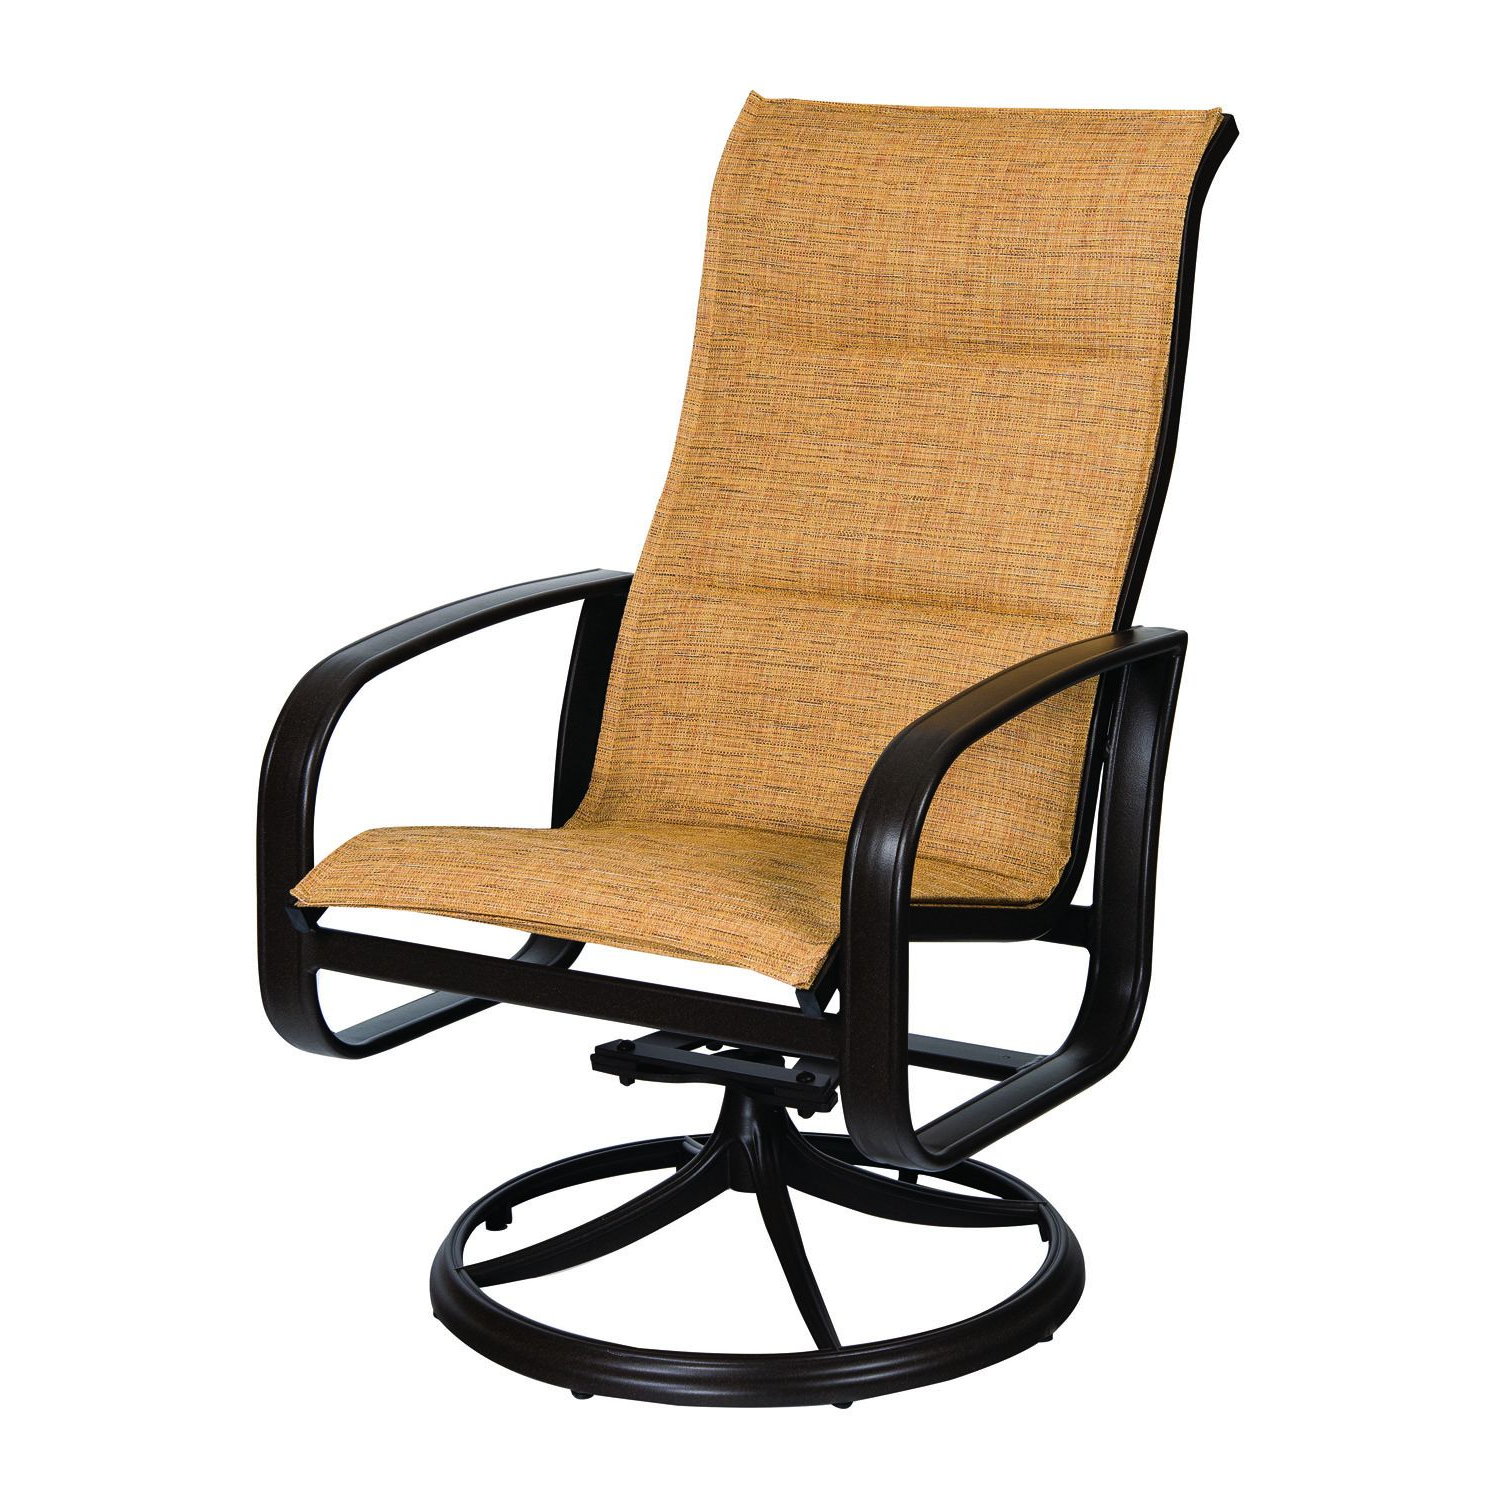 Cayman Isle Padded Sling High Back Swivel Rocking Dining Armchair Throughout Well Known Padded Sling High Back Swivel Chairs (Gallery 1 of 30)